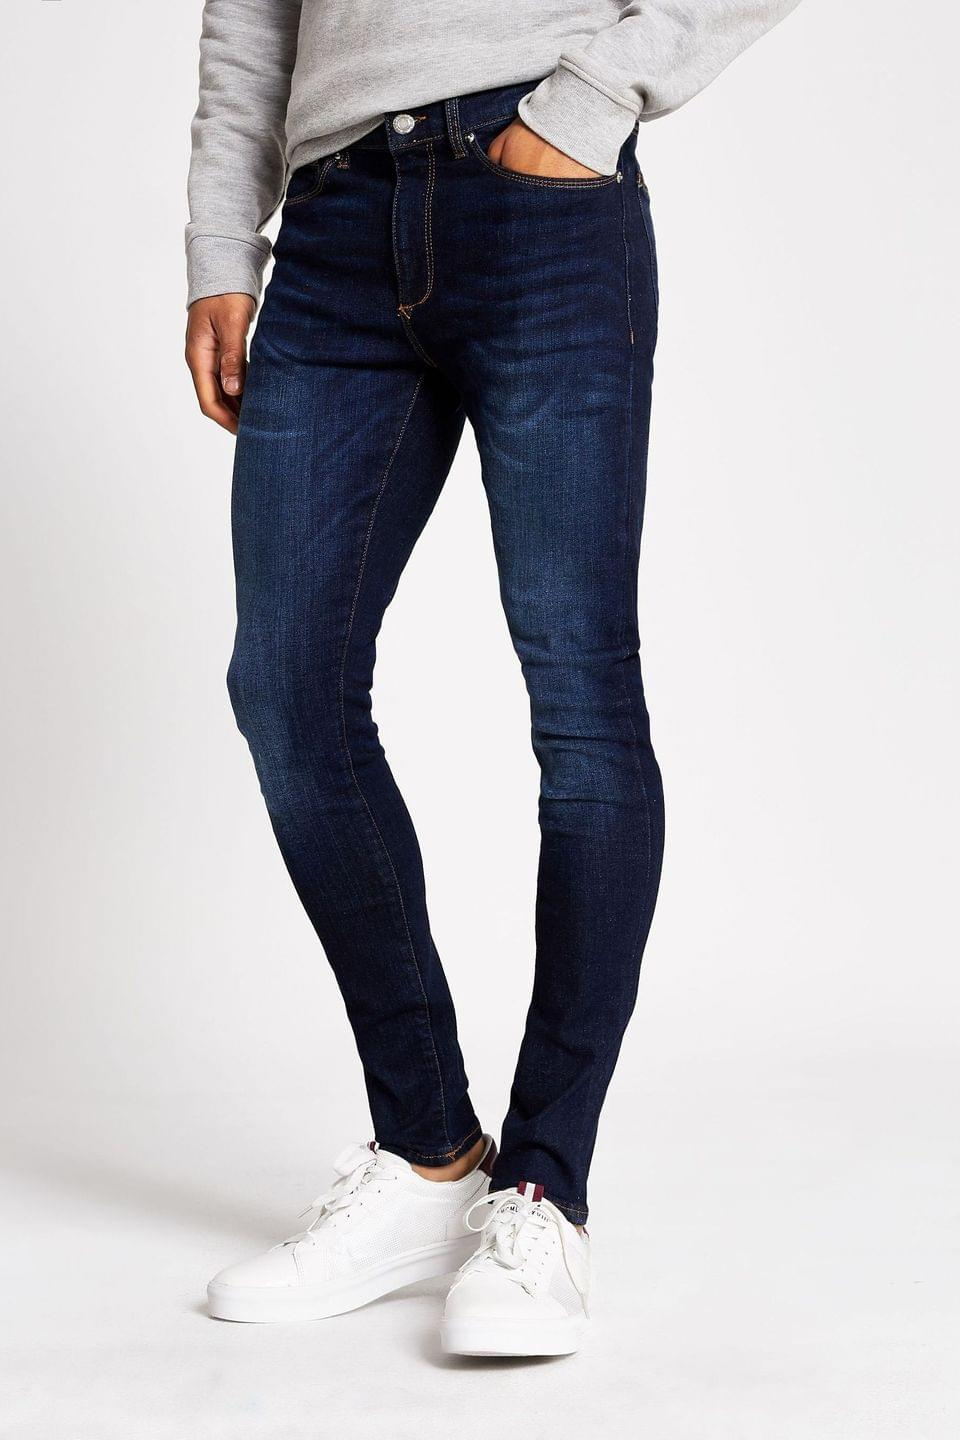 Men's River Island Dark Blue Zepplin Jeans